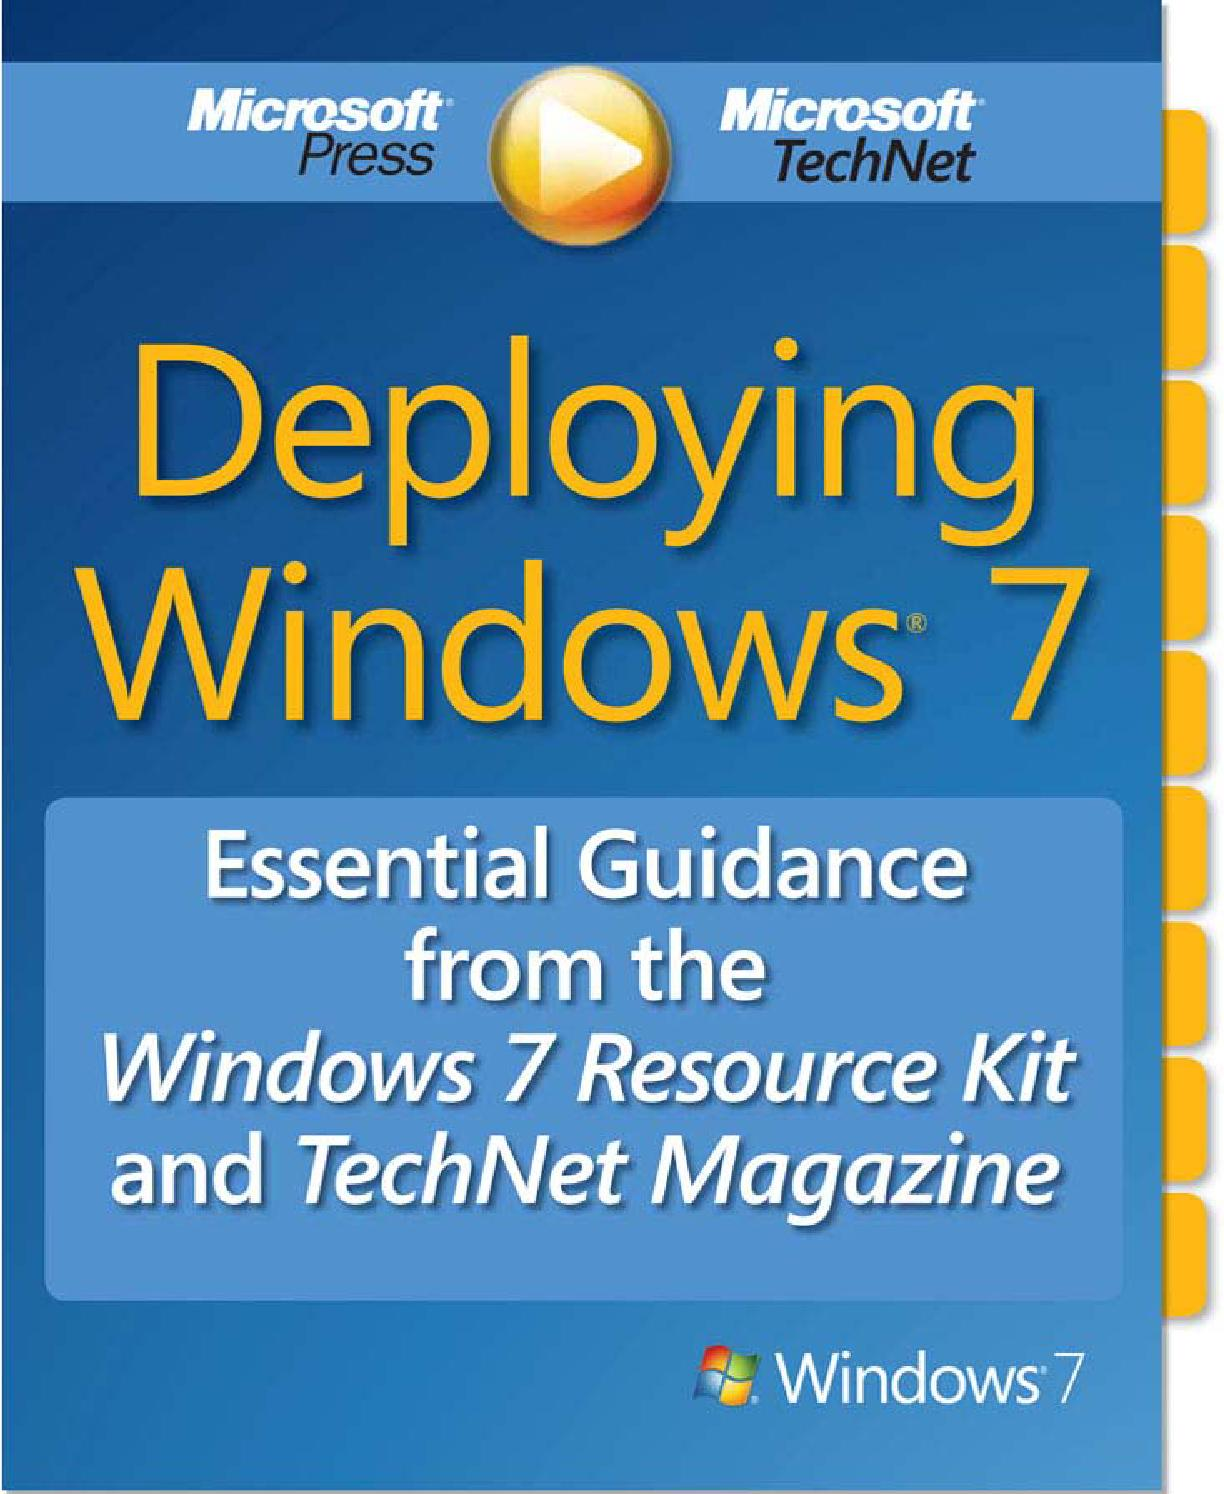 Deploying windows 7 essential guidance by Hofman Ortiz - issuu